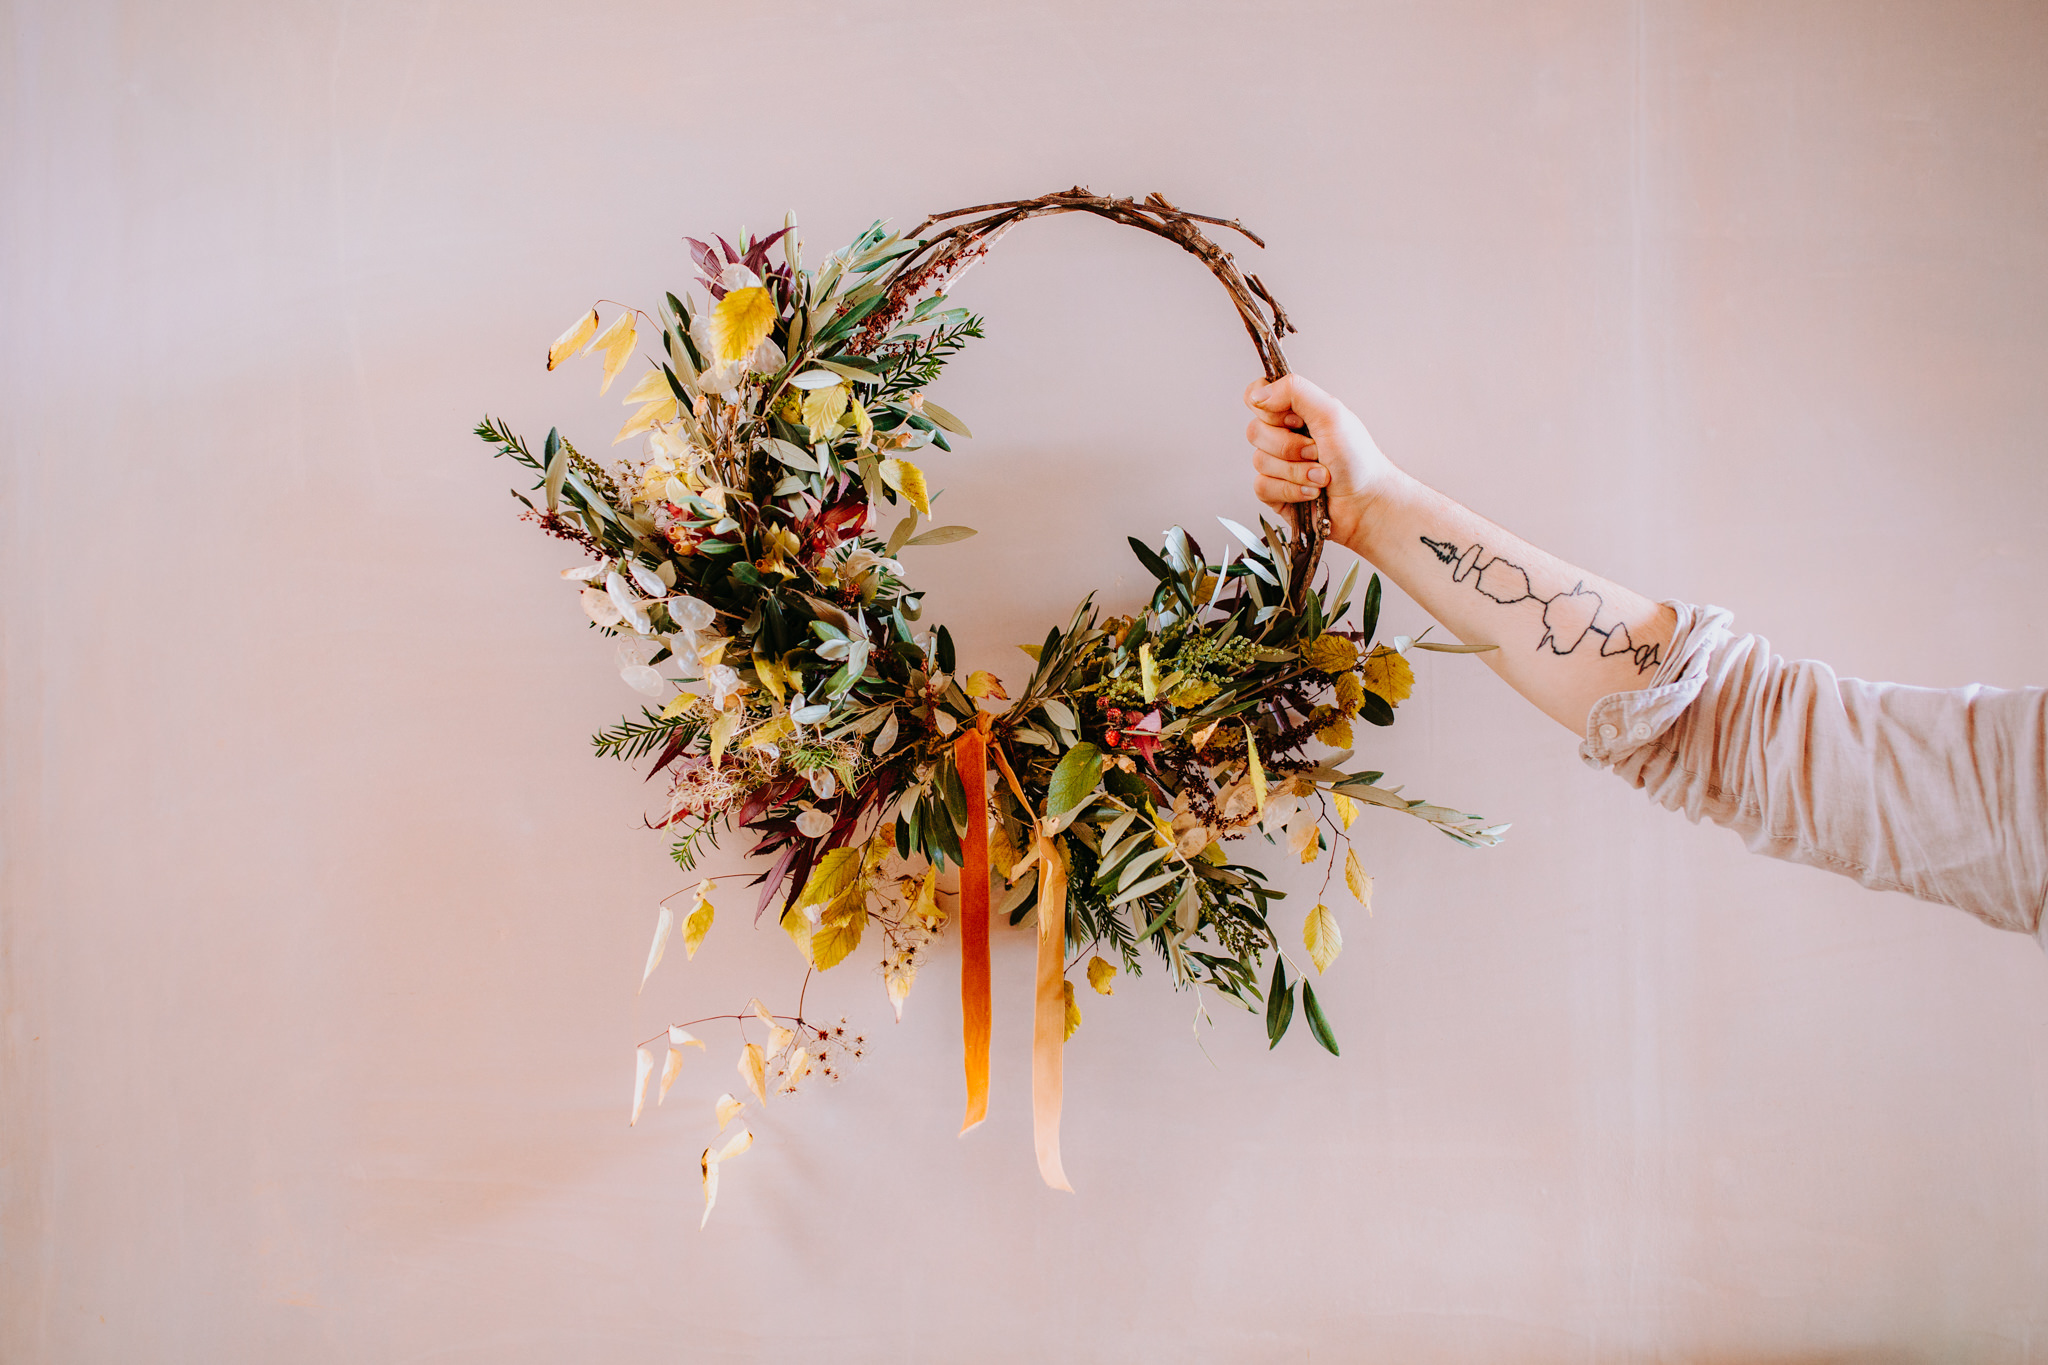 FESTIVE WREATH WORKSHOP - THURSDAY 22ND NOVEMBER @ 6.30PM